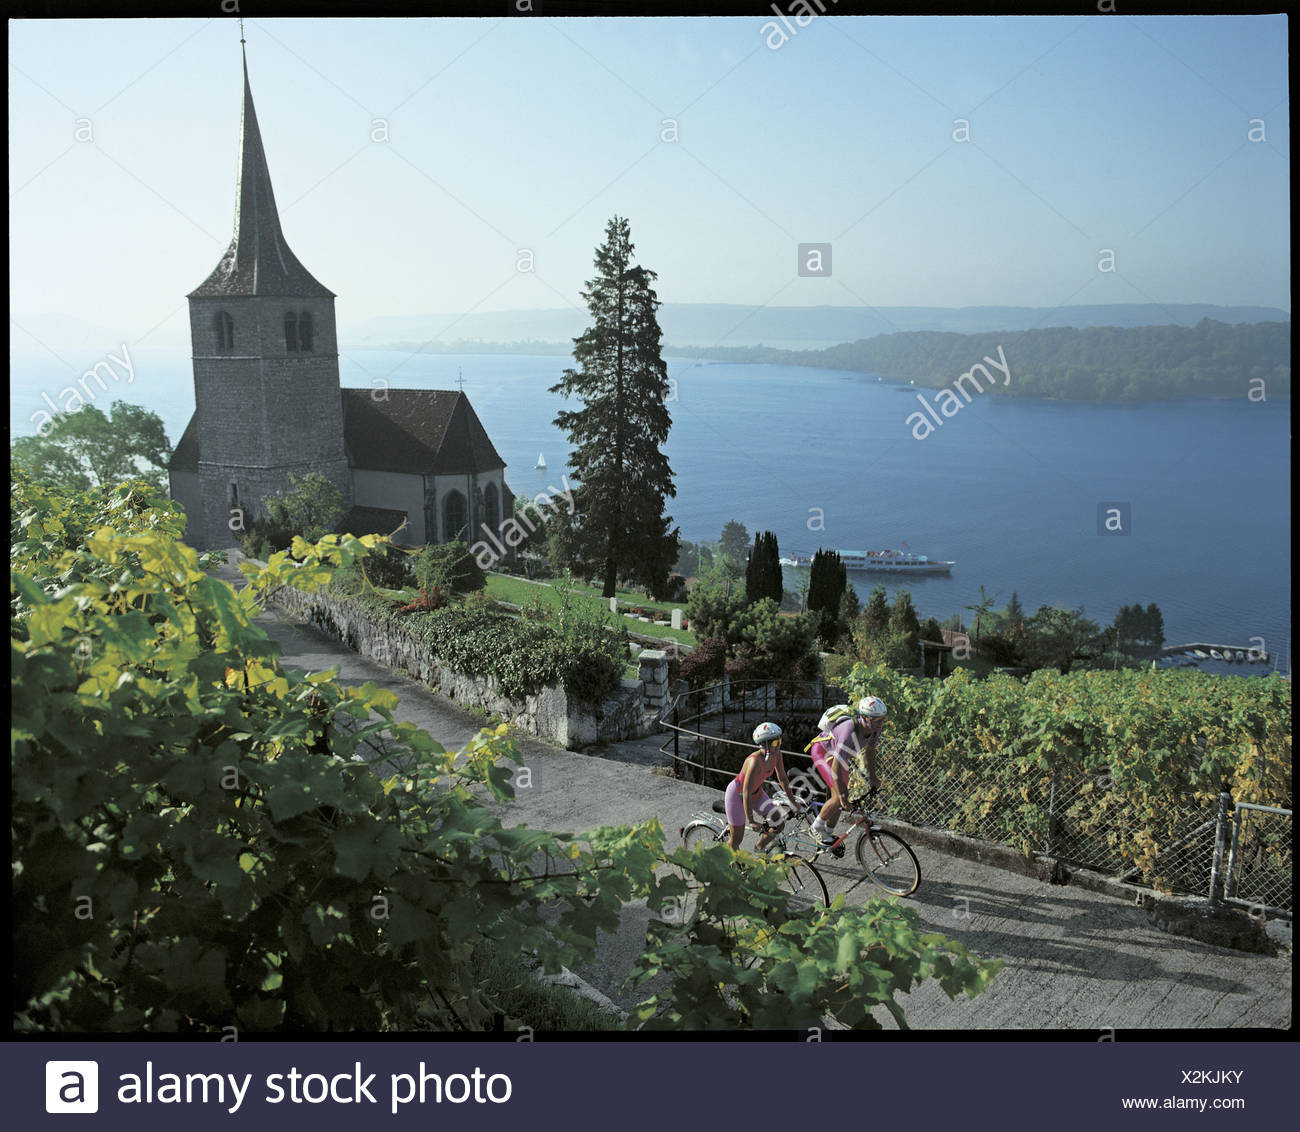 Ligerz, church, vineyards, cyclists, Velofahrer, Velo, bicycle, bike, shoots, wine, Bielersee, lake, sea, scenery, Seeland, cant - Stock Image